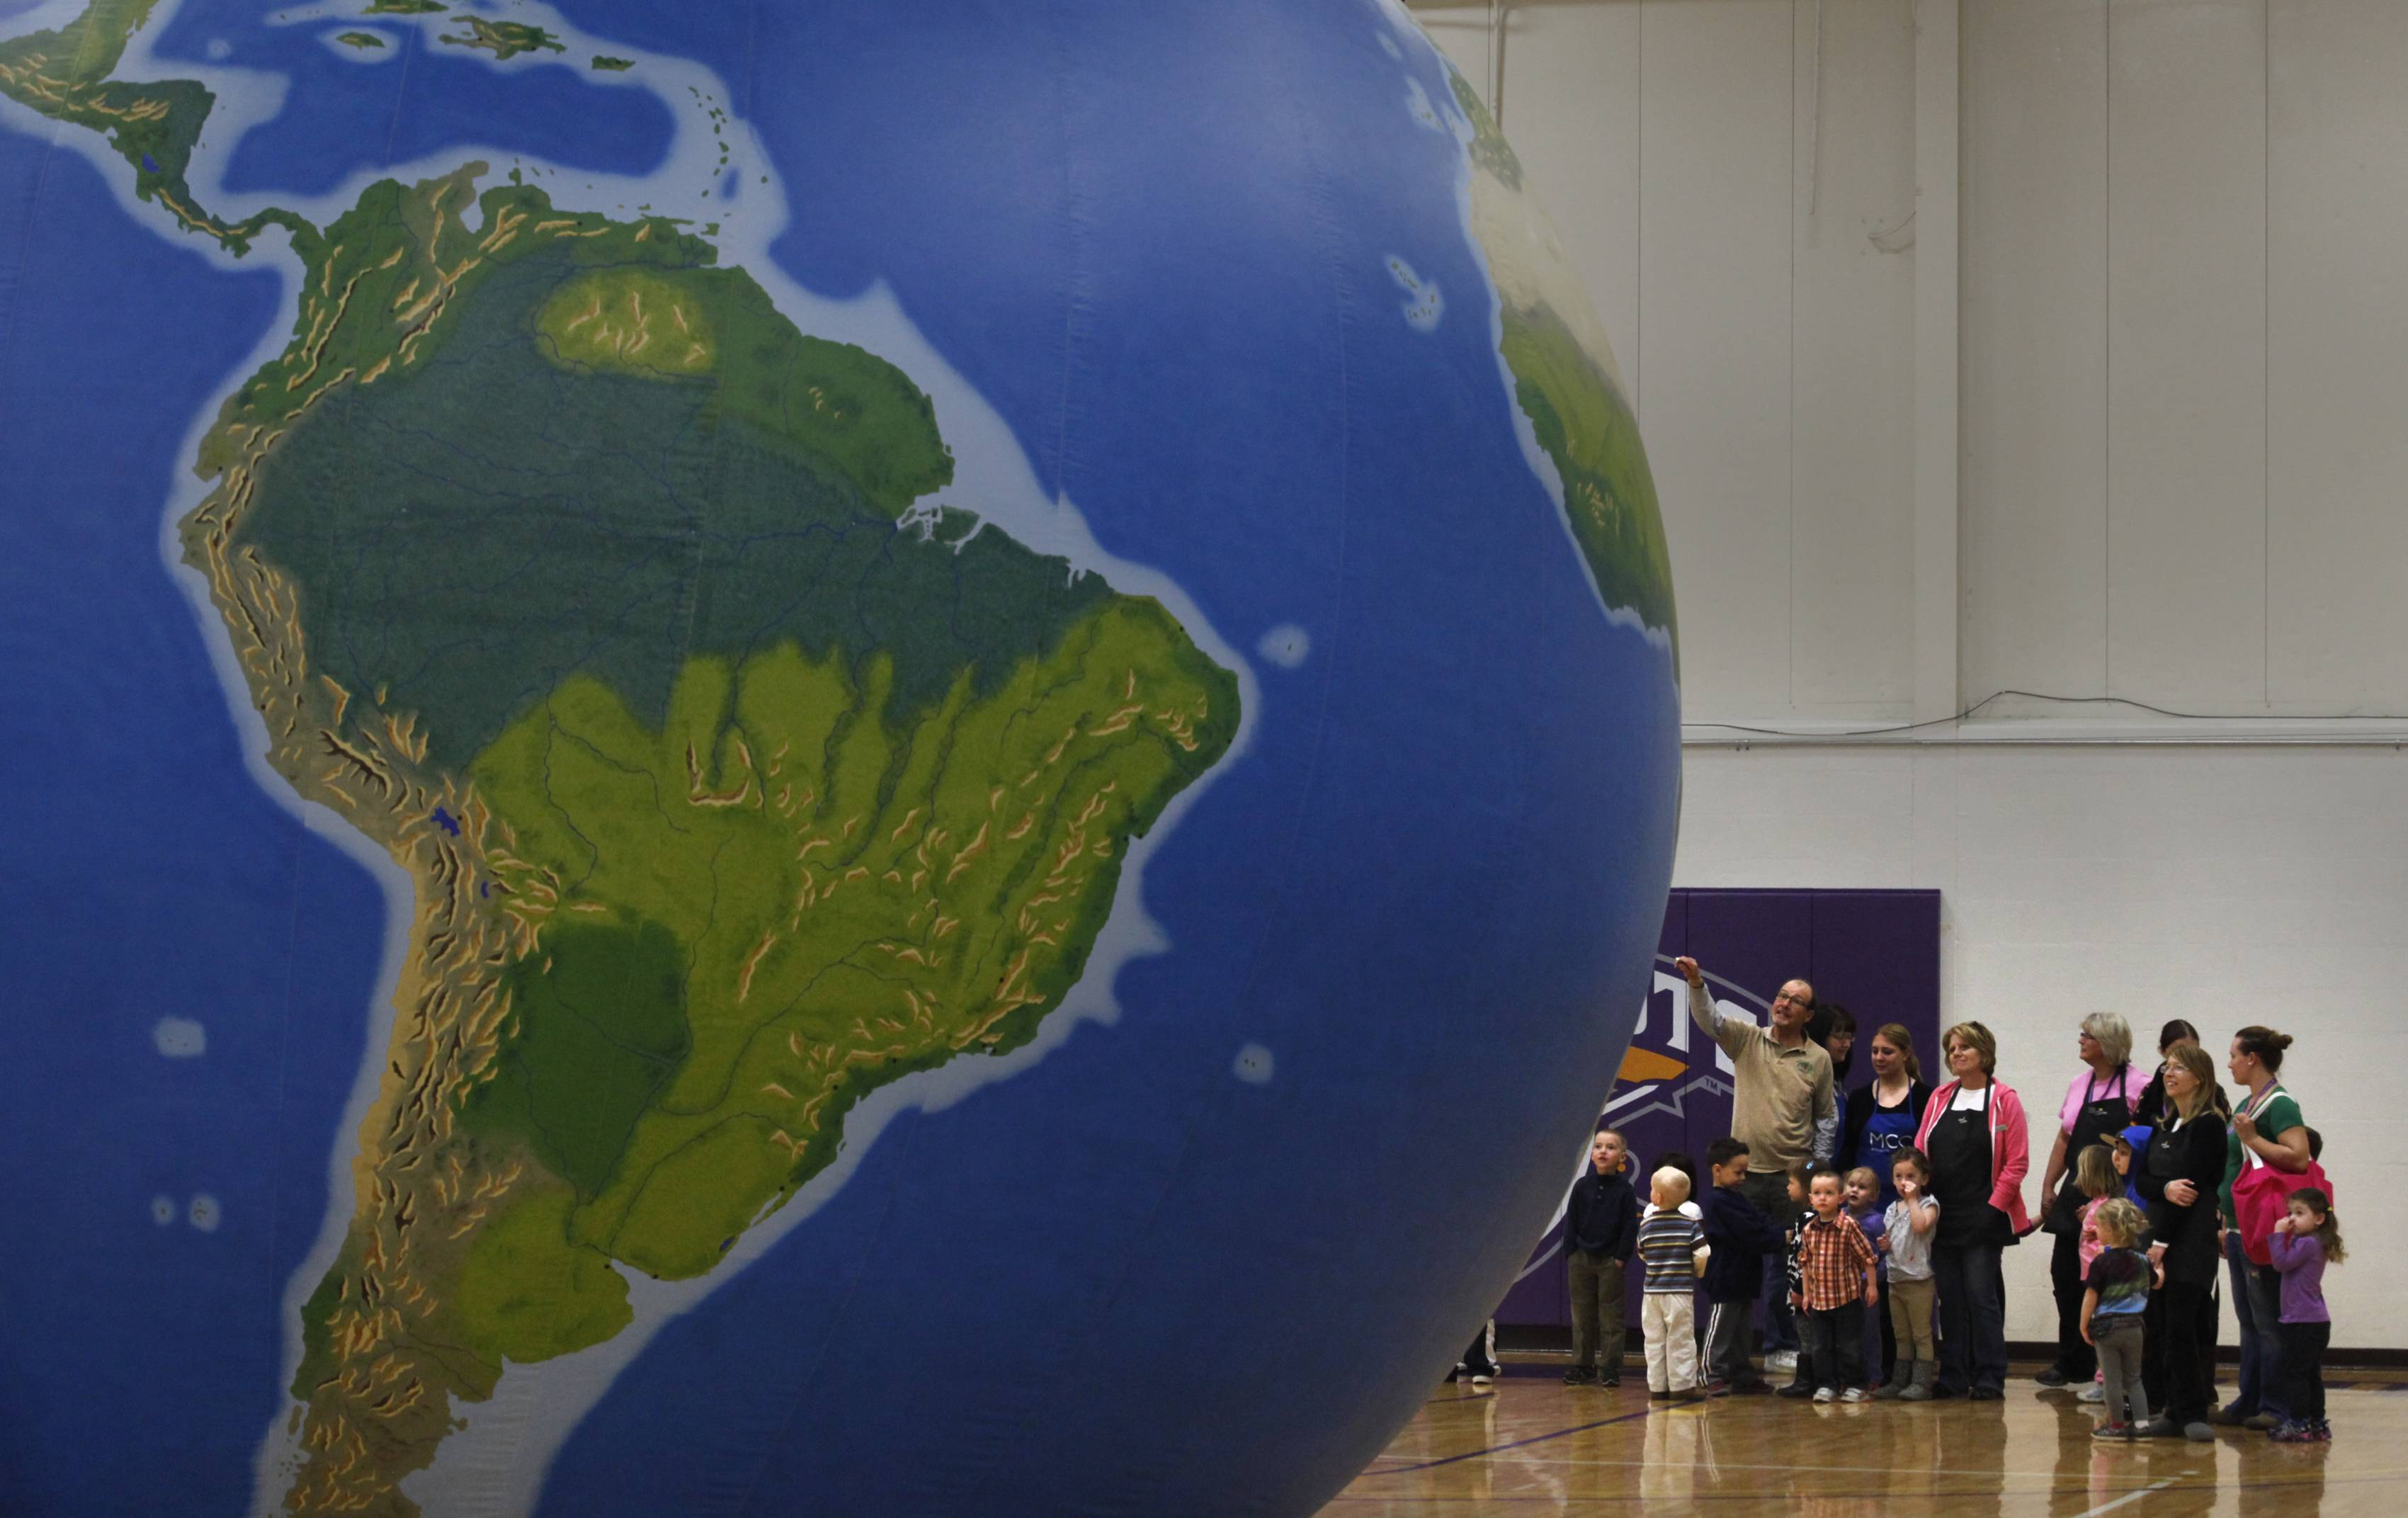 McHenry County College Children's Learning Center students and their teachers get a tour of the outside of the GeoSphere before heading inside the inflatable globe for a geography lesson Monday in Crystal Lake.